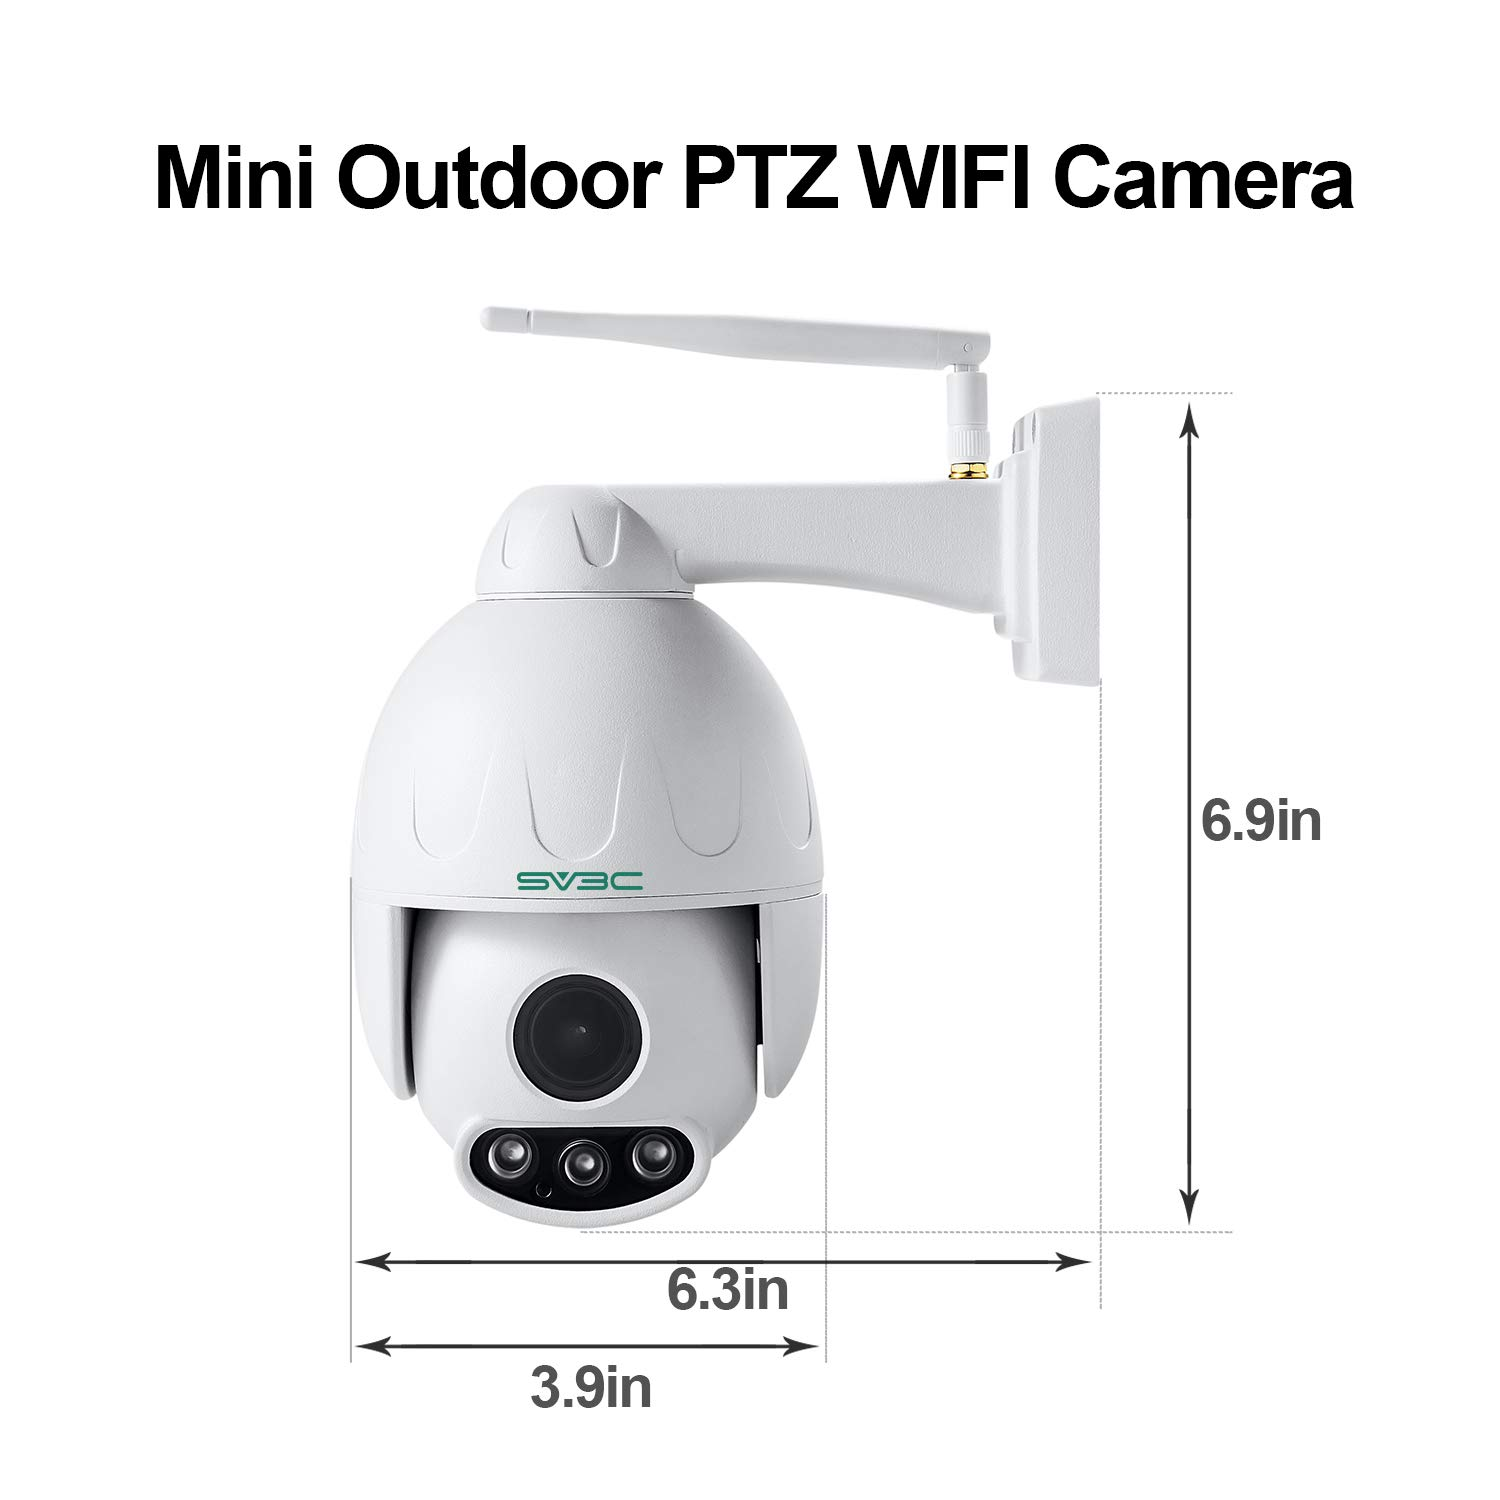 SV3C 1080P Outdoor PTZ WiFi Security Camera,Pan Tilt Zoom (5X Optical Zoom)  Wireless Surveillance CCTV IP Camera with Two Way Audio,IP66